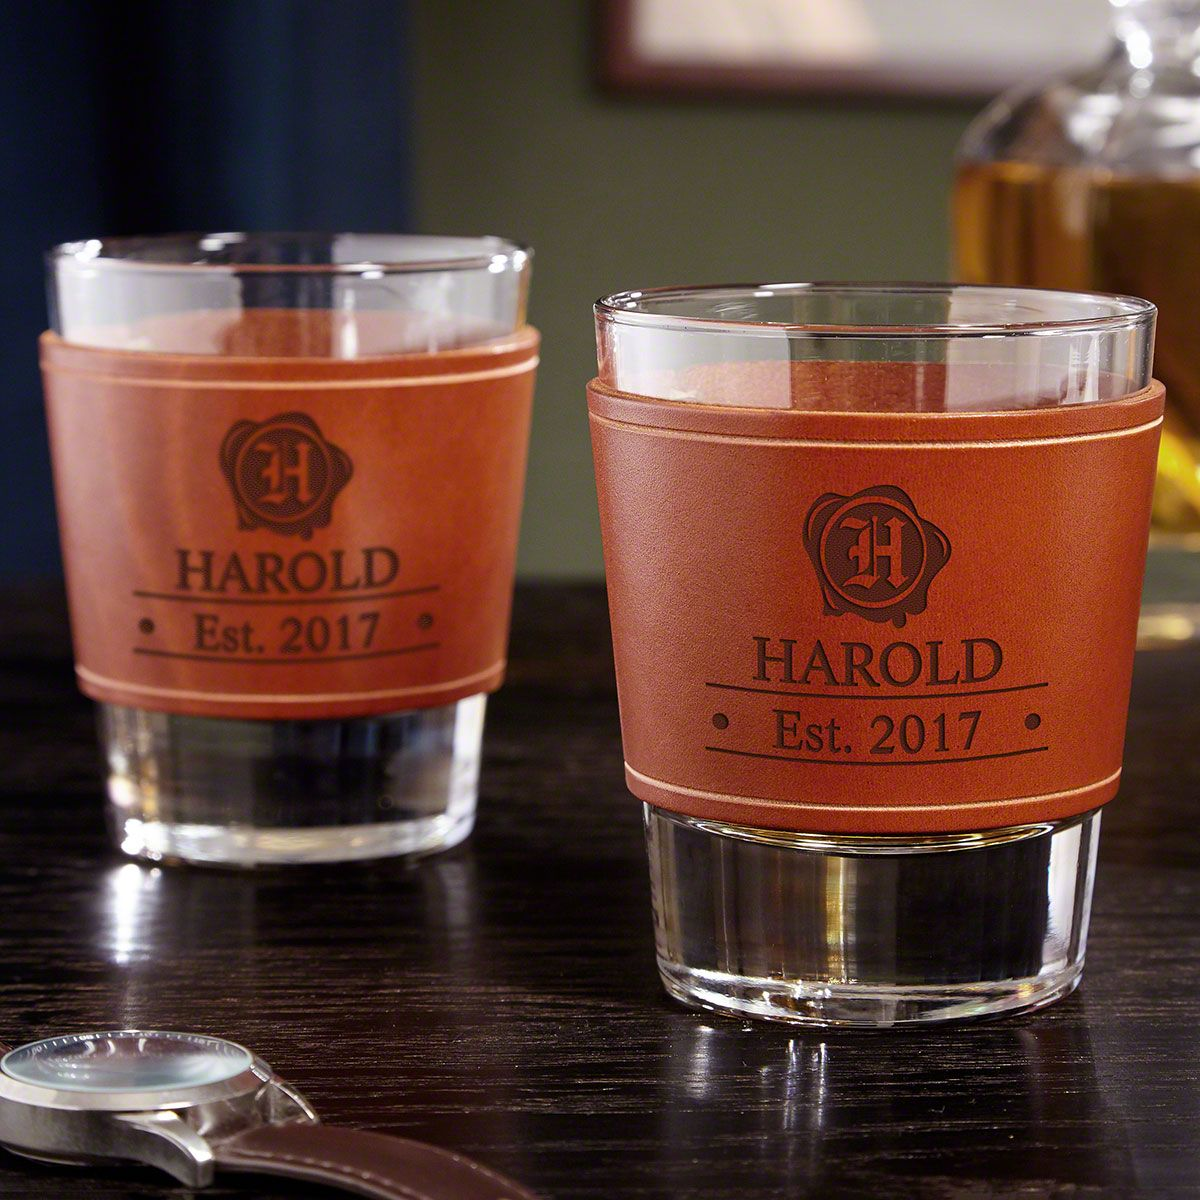 Wax Seal Whiskey Glasses with Personalized Leather Wrap, Set of 2